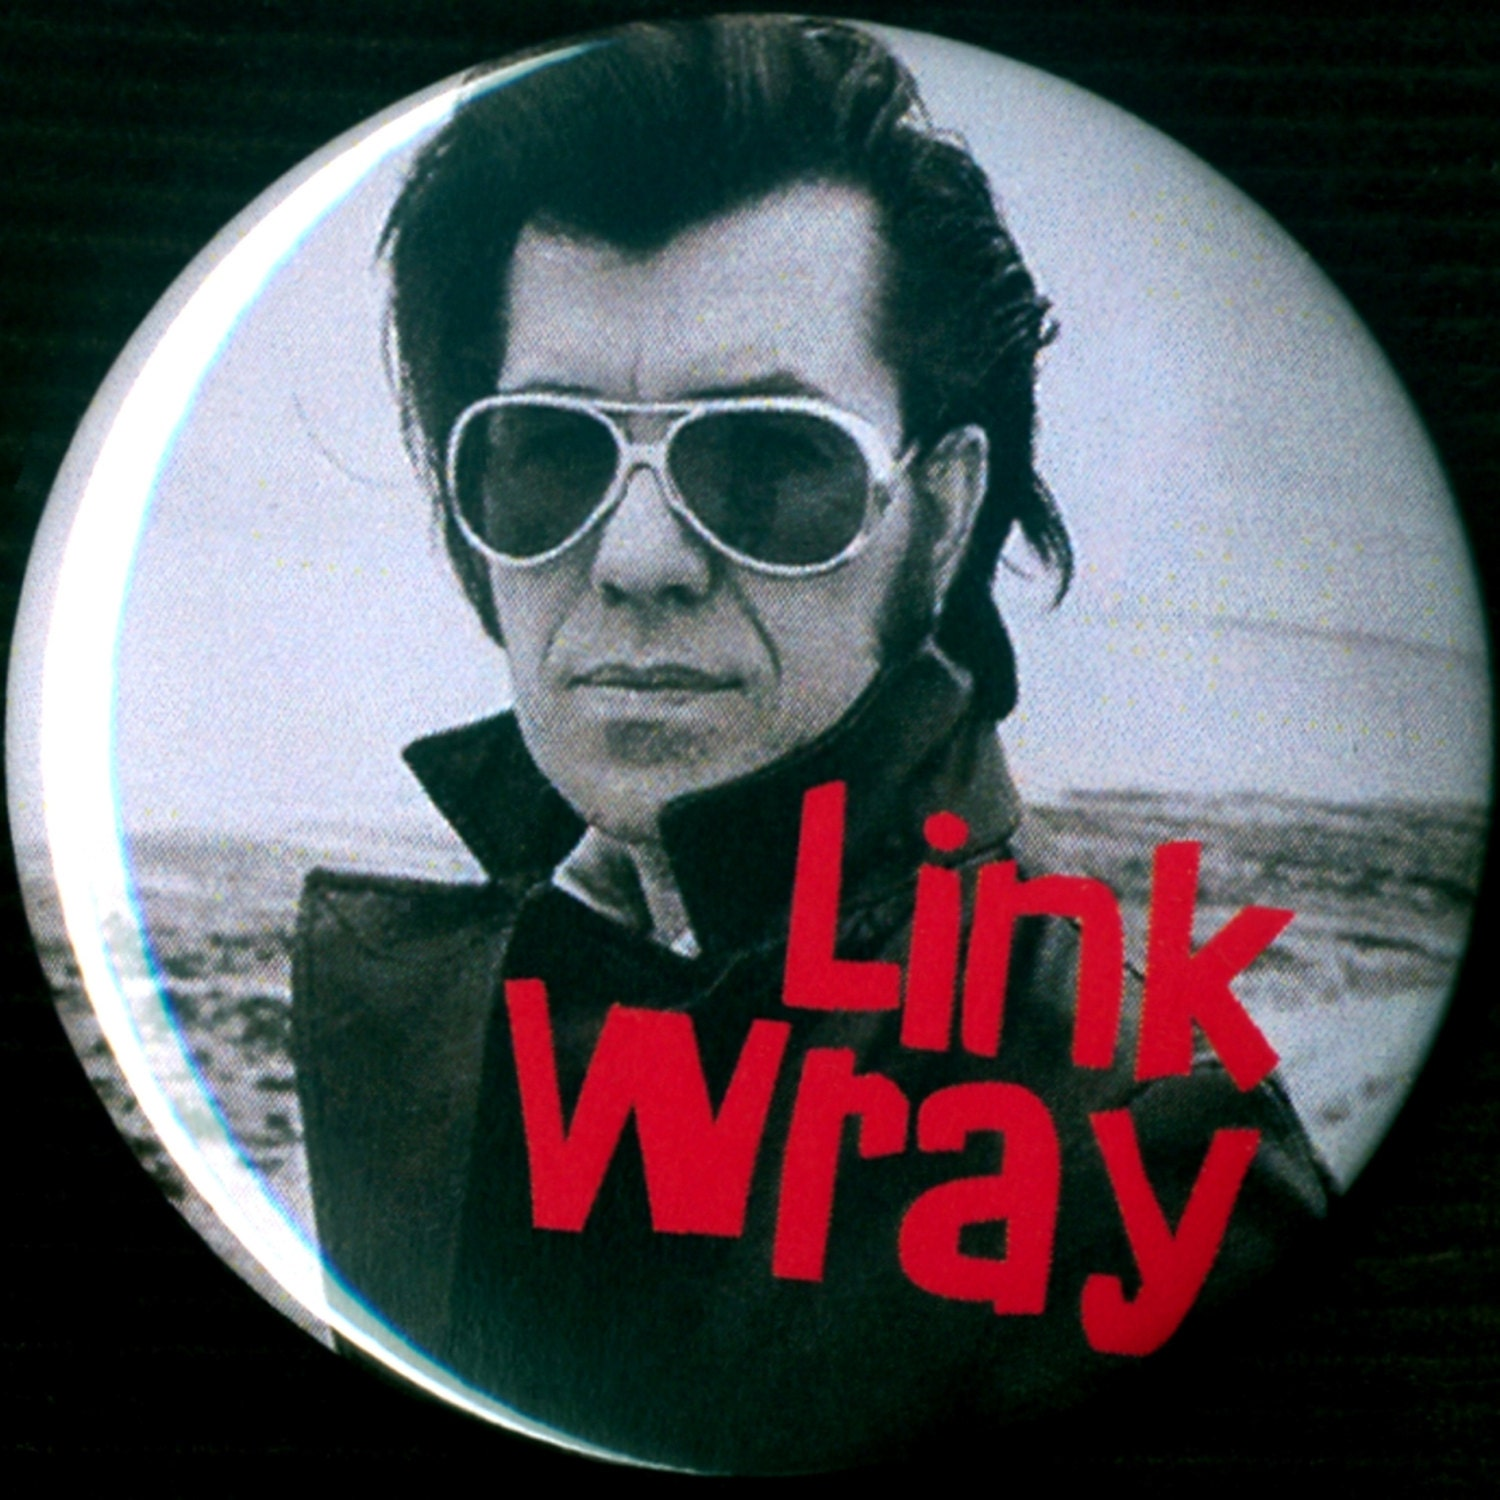 catholic singles in wray Fred lincoln  link  wray, jr (may 2, 1929 – november 5, 2005) was an american rock and roll guitarist, songwriter, and vocalist who became popular in the late 1950s.